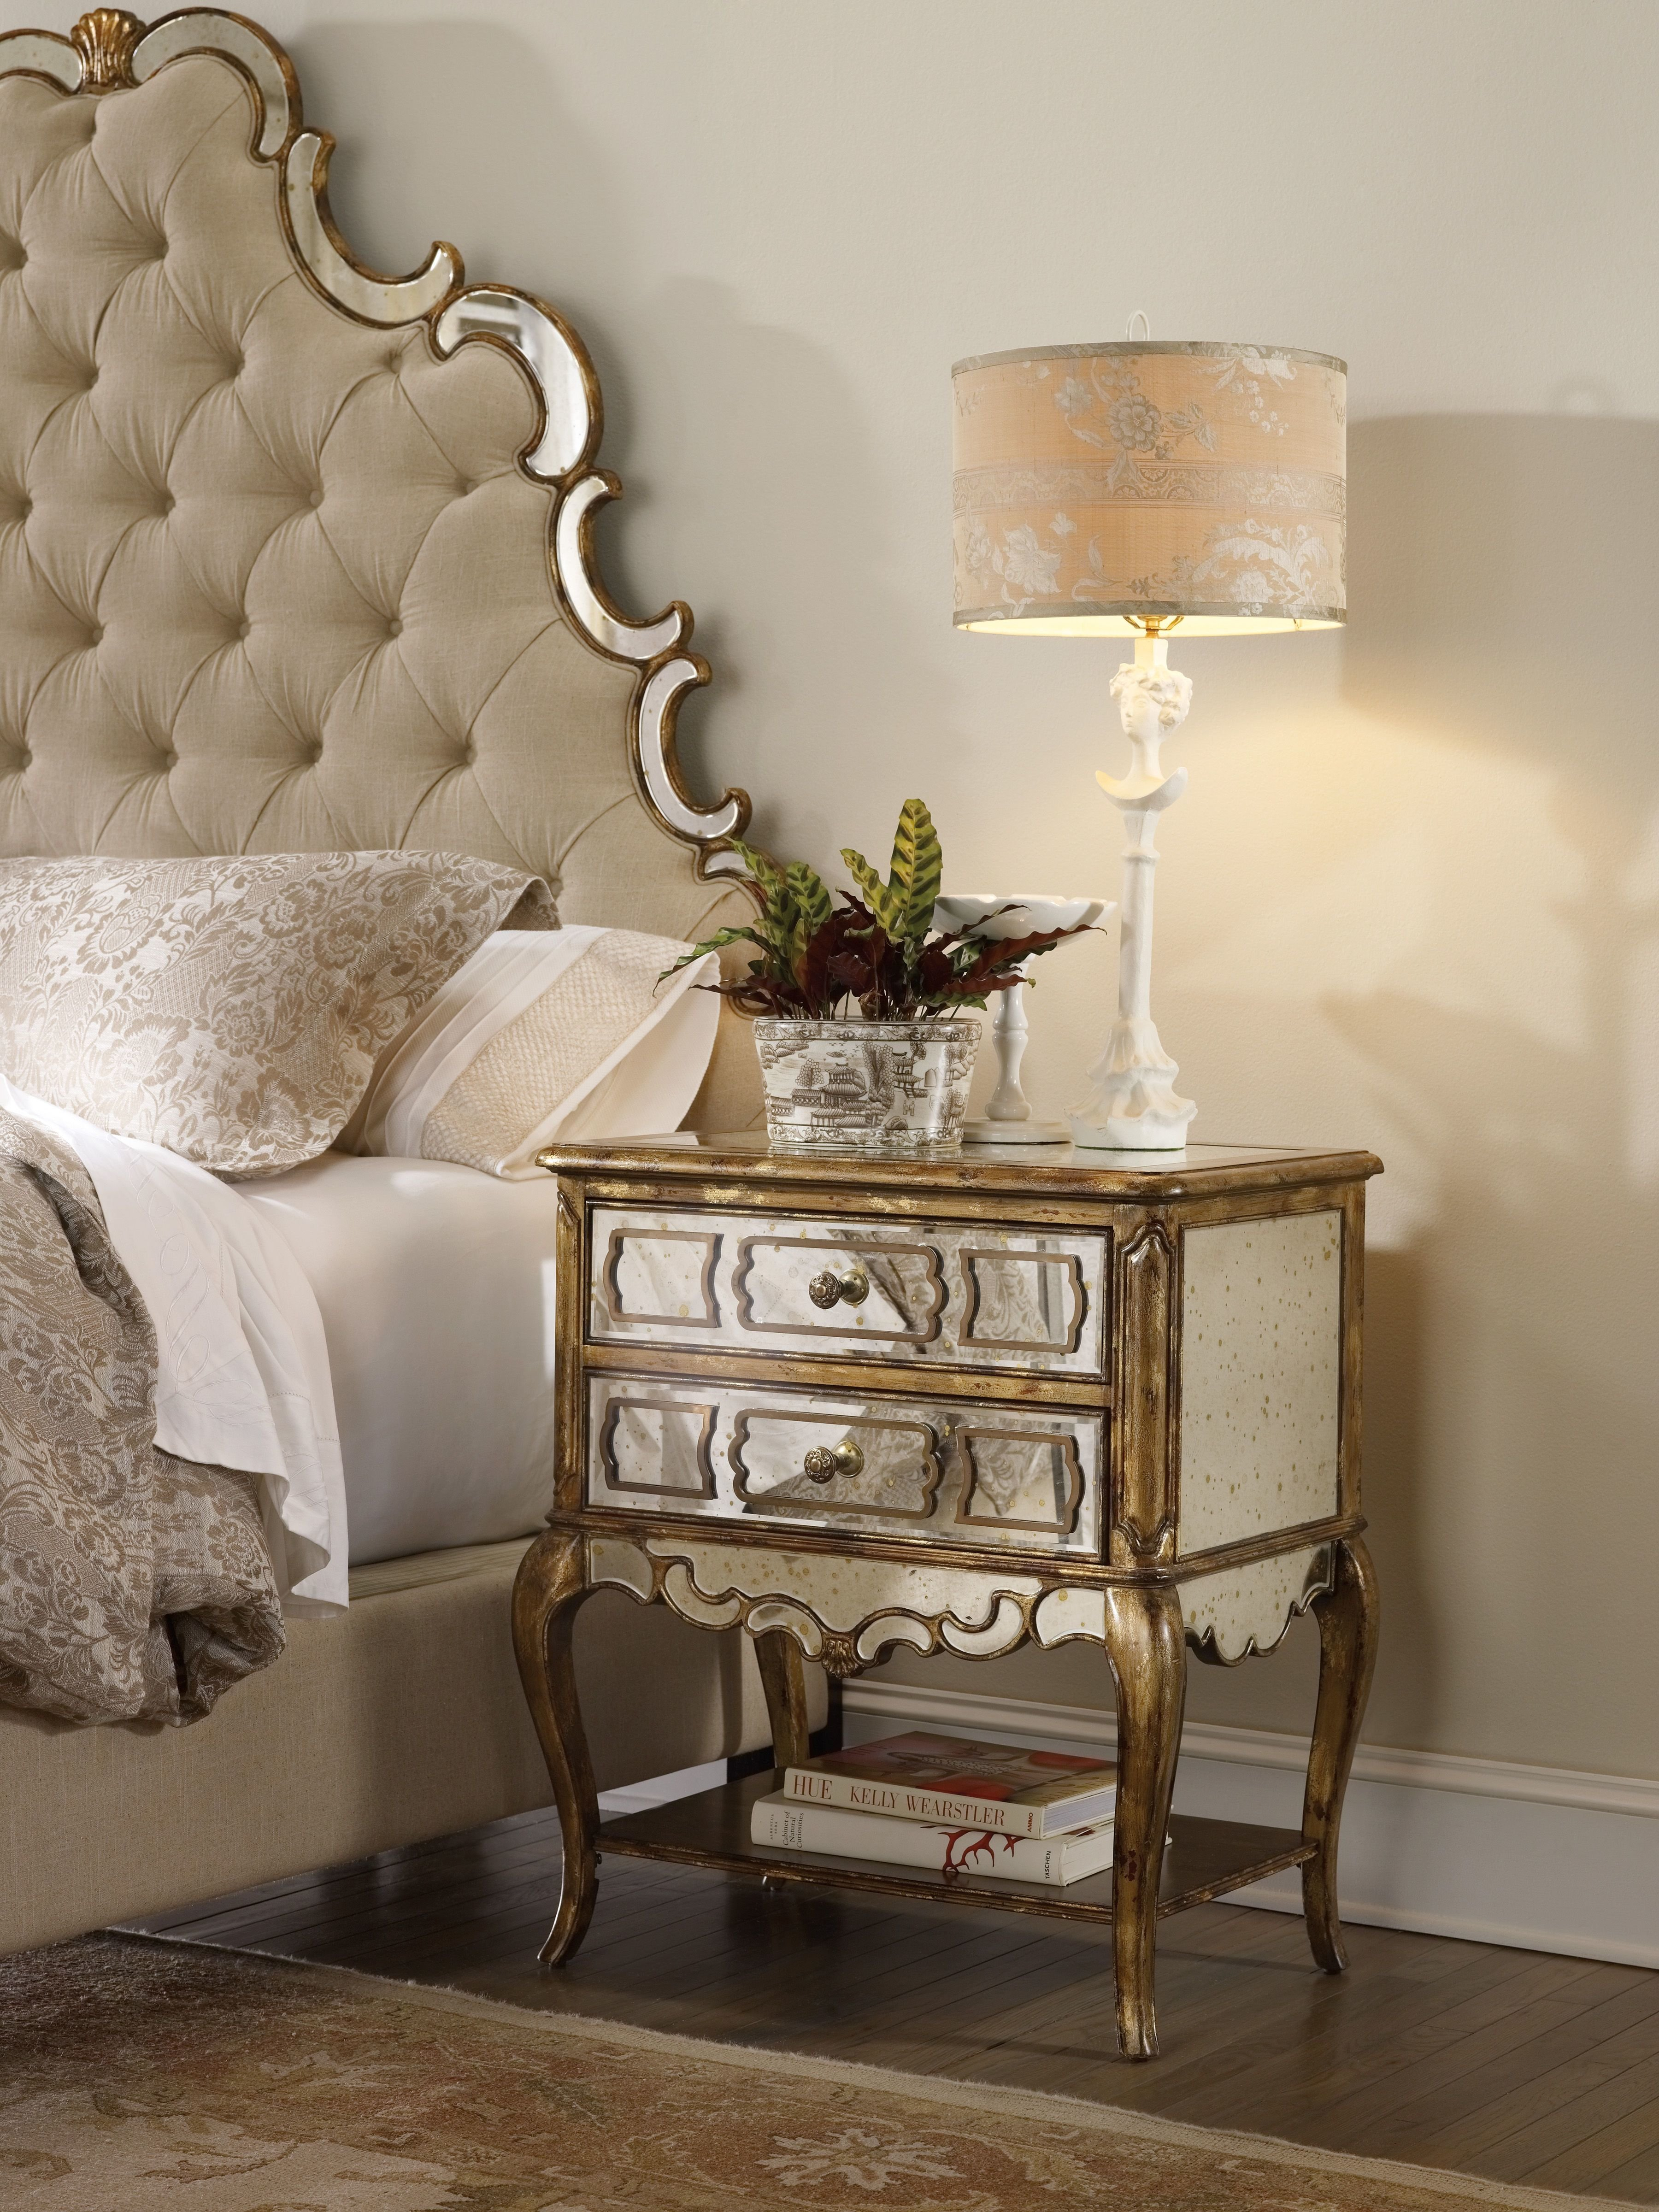 Best H**K*R Furniture Bedroom Sanctuary Mirrored Leg Nightstand Bling 3016 90015 With Pictures